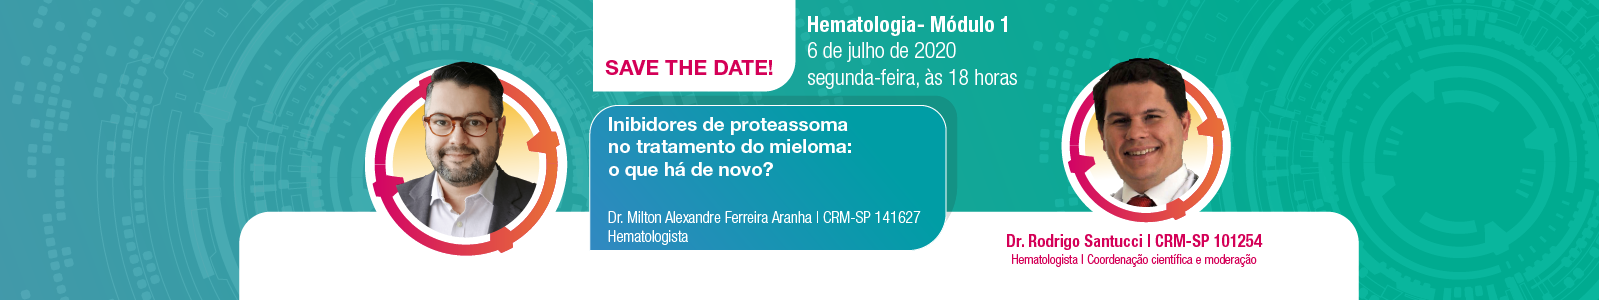 Aulas-banners-hematologia-Módulo 1-save the date